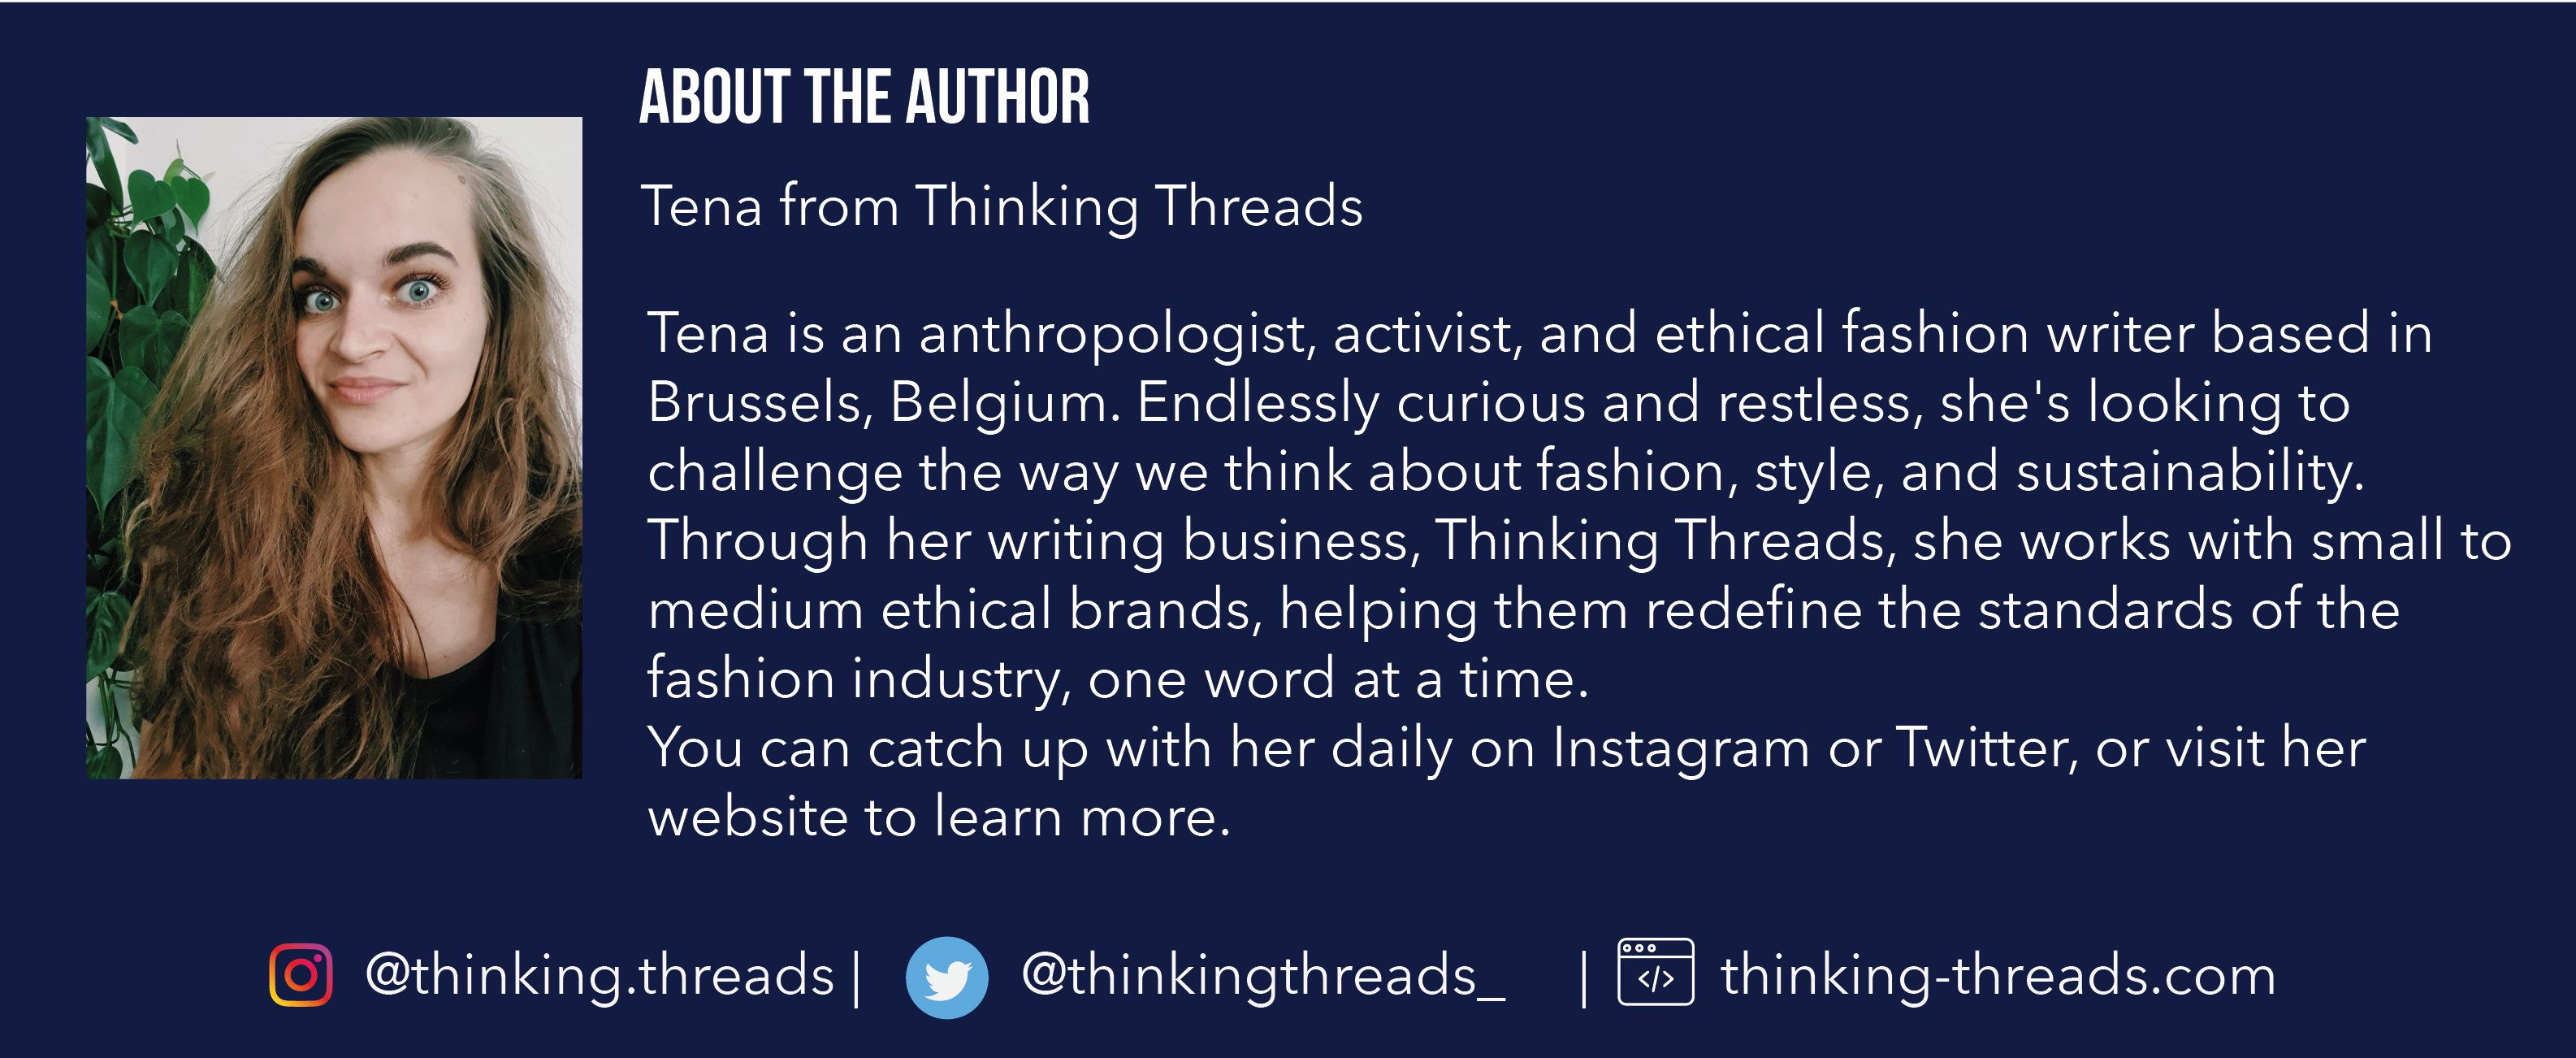 About the author: Tena from Thinking Threads